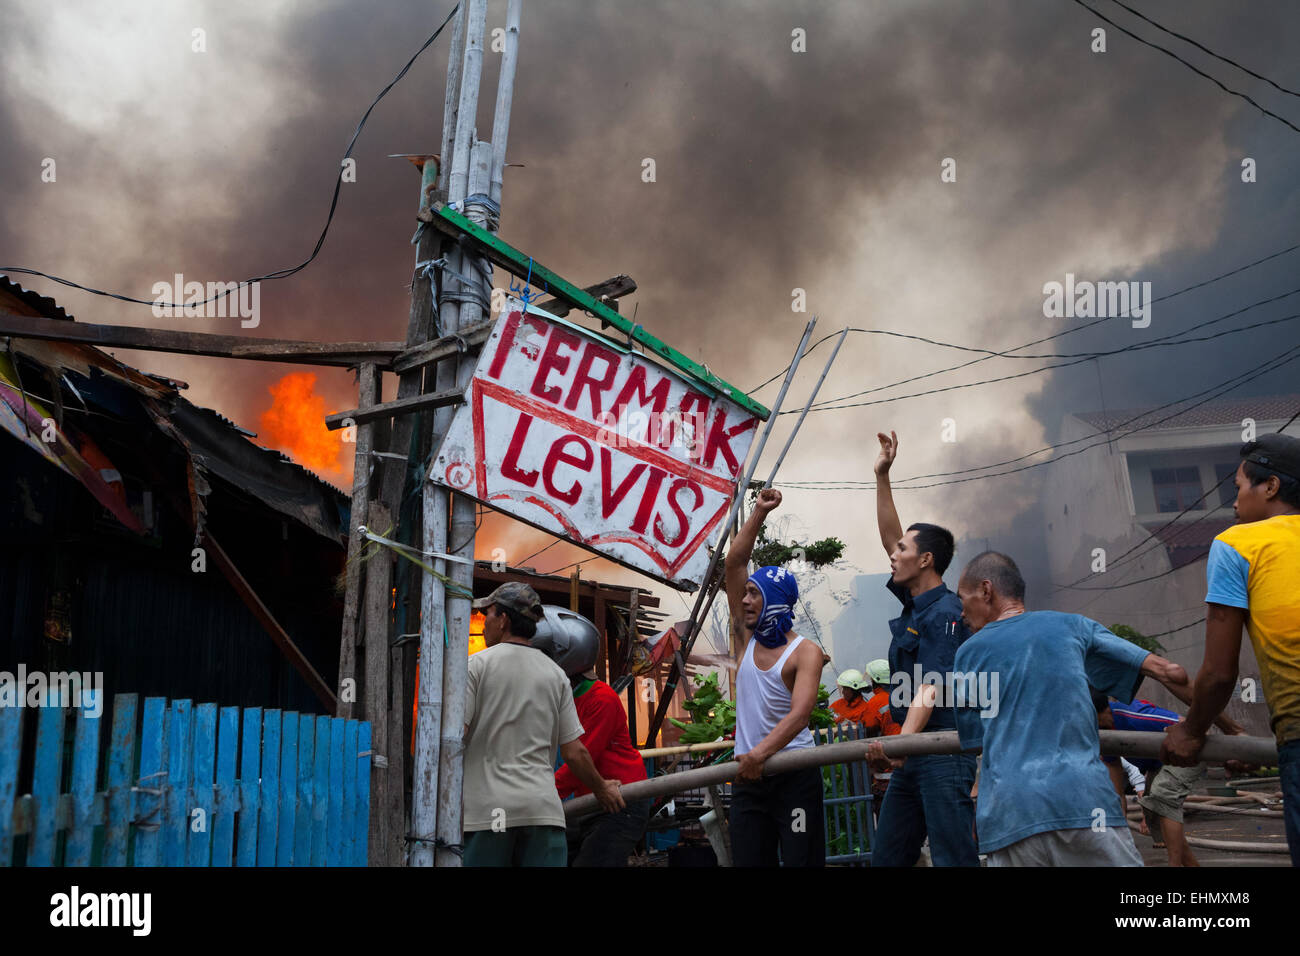 Local people coordinate to fight a fire accident in a densely populated area of Jakarta, Indonesia. © Reynold - Stock Image